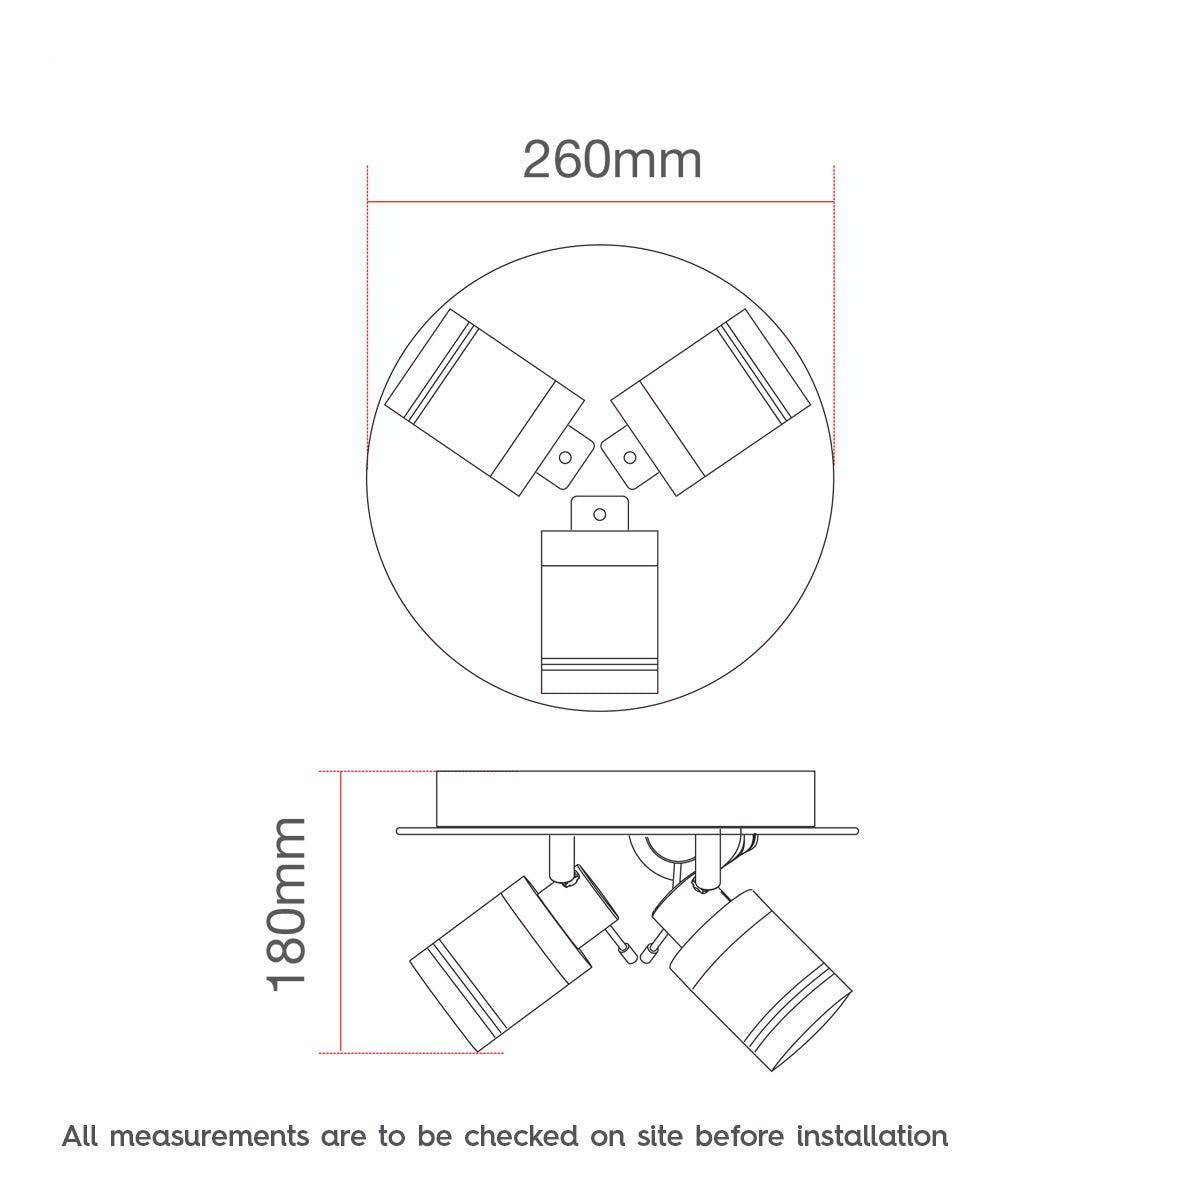 Dimensions for Forum Ligero 3 light bathroom spotlight